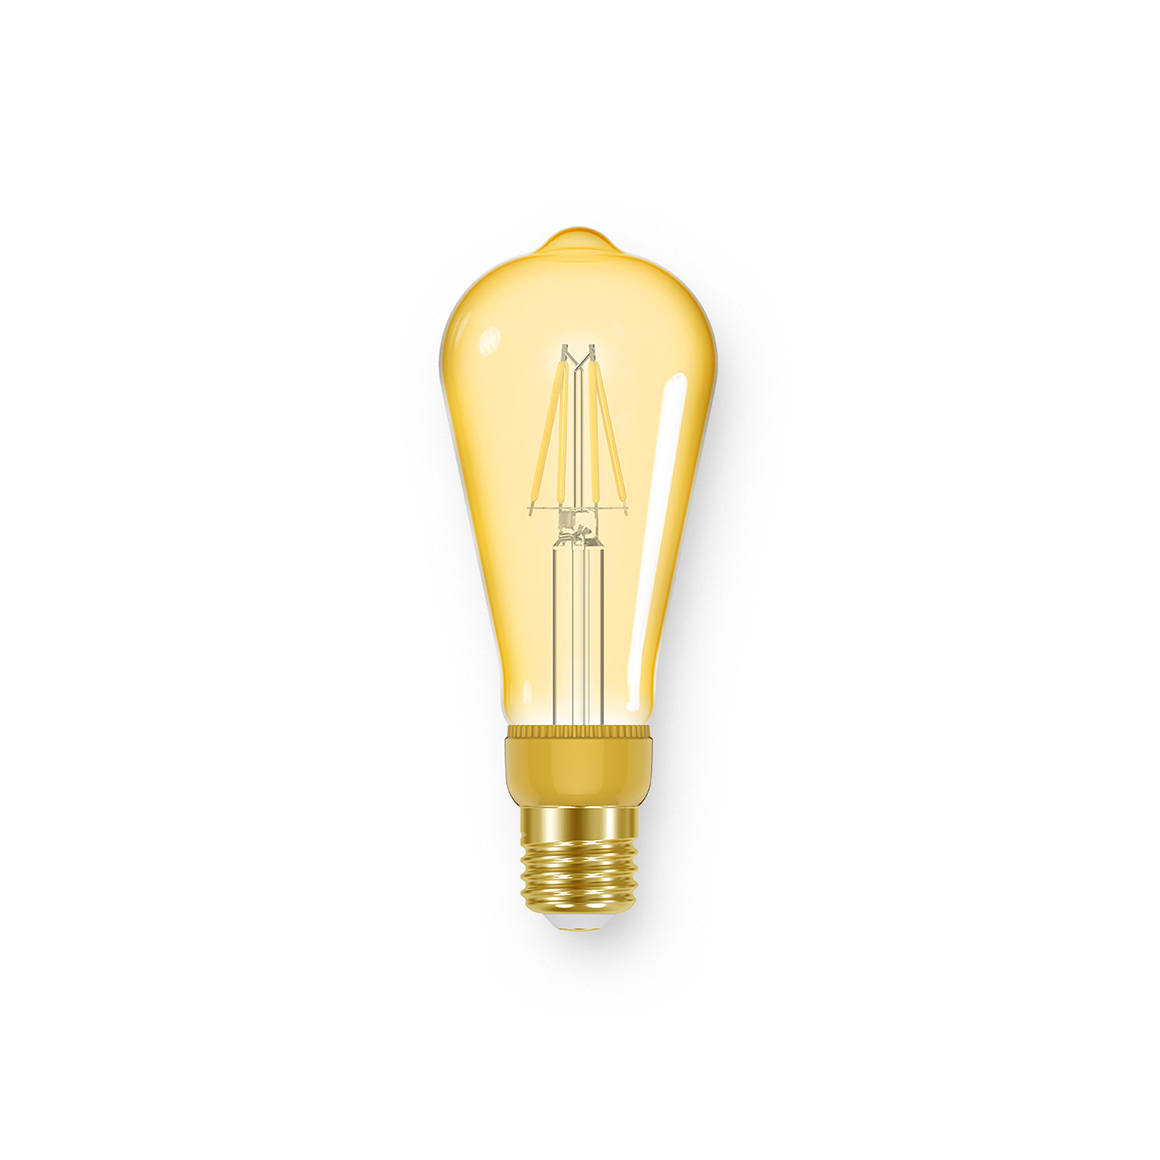 Filament ST64 Vintage 350lm Dimmable E27